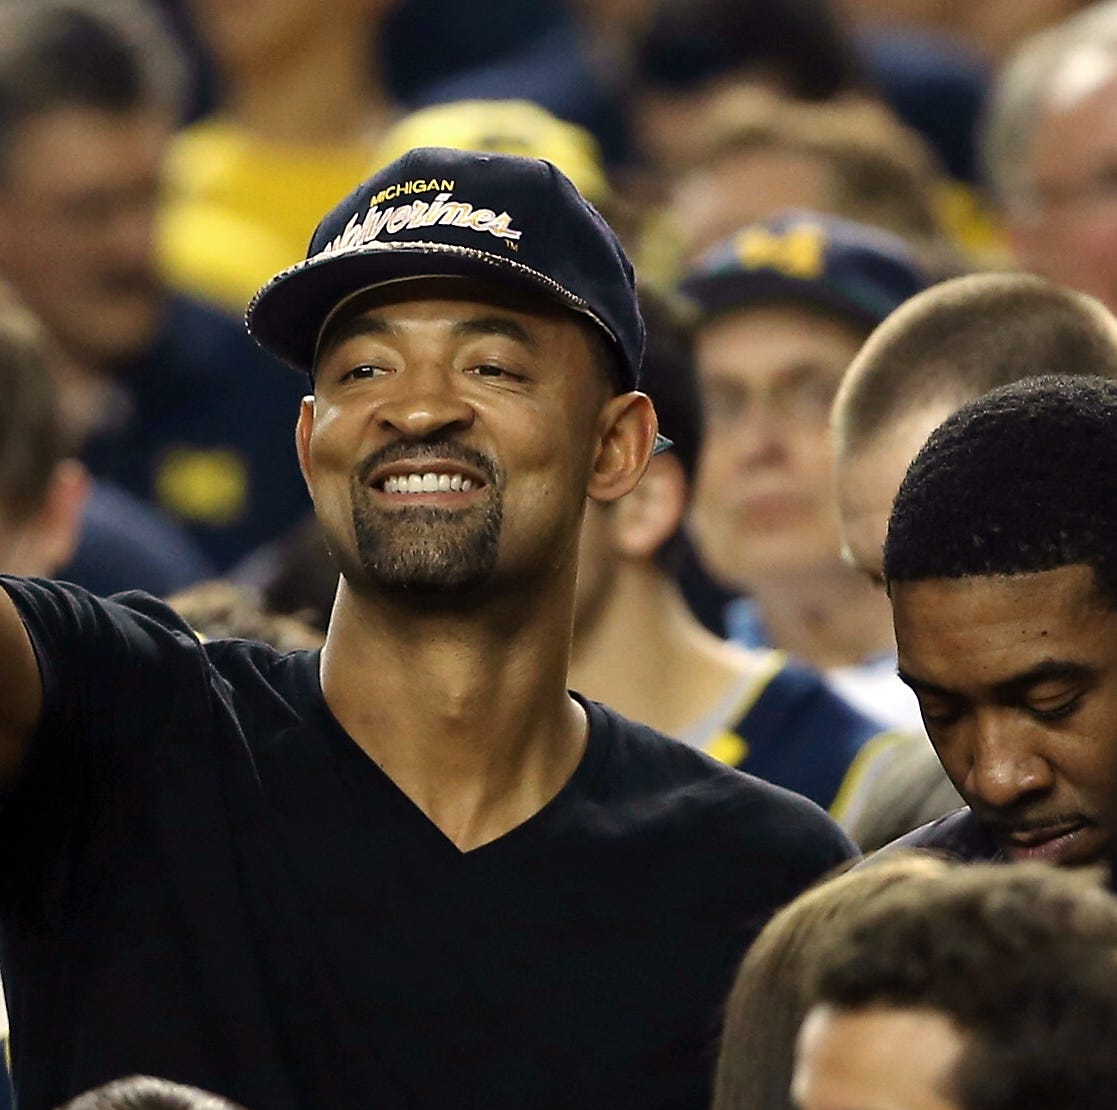 Michigan offers Juwan Howard its basketball job, deal being negotiated